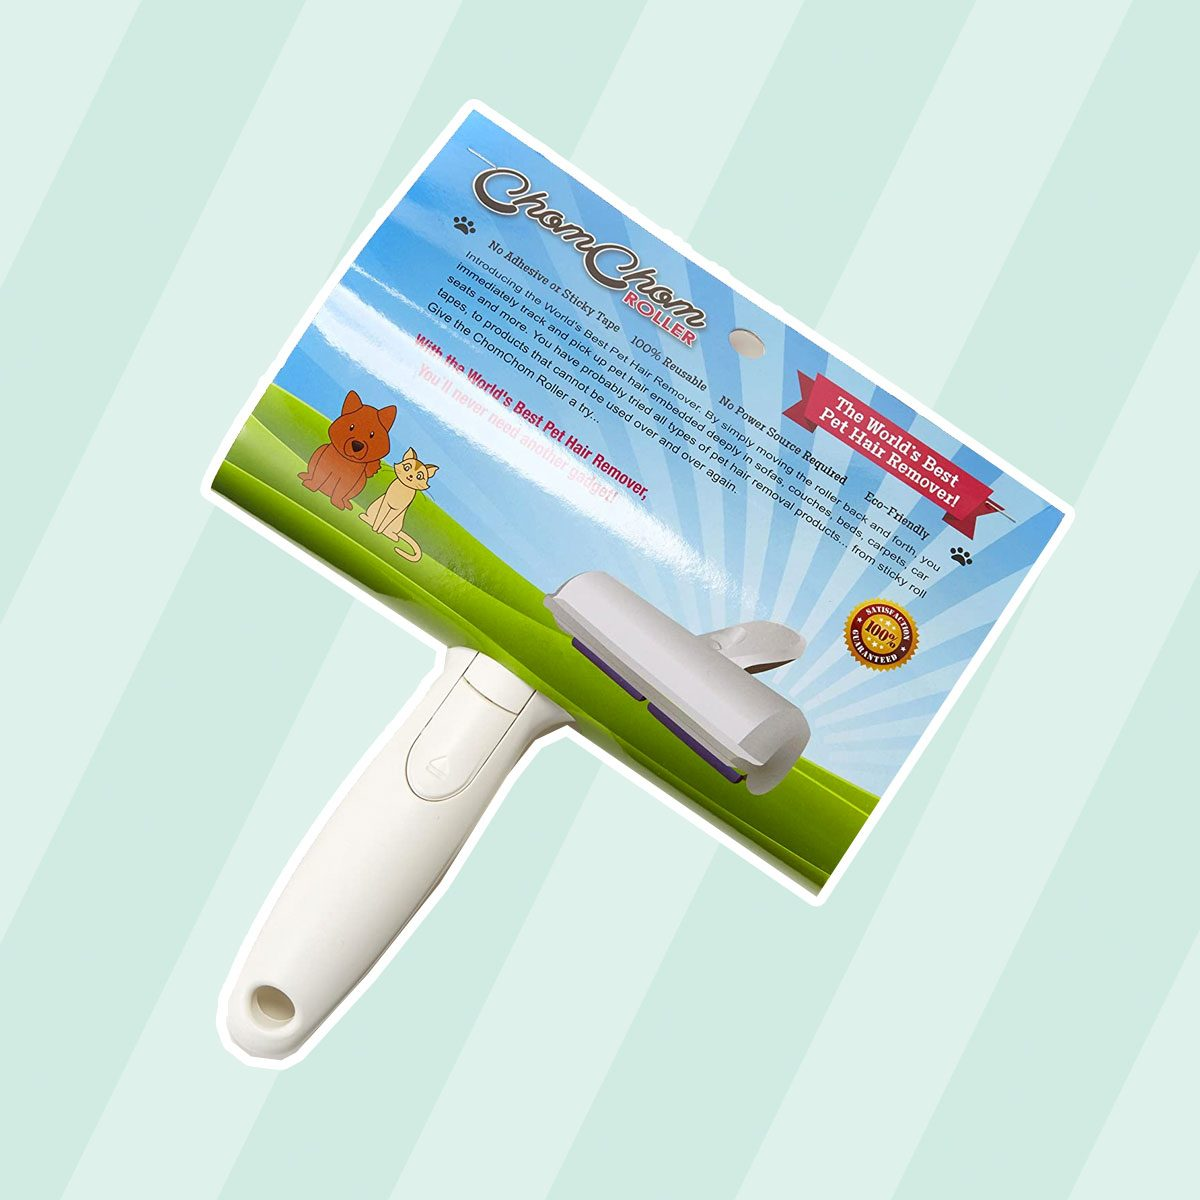 ChomChom Roller Dog Hair Remover, Cat Hair Remover, Pet Hair Remover